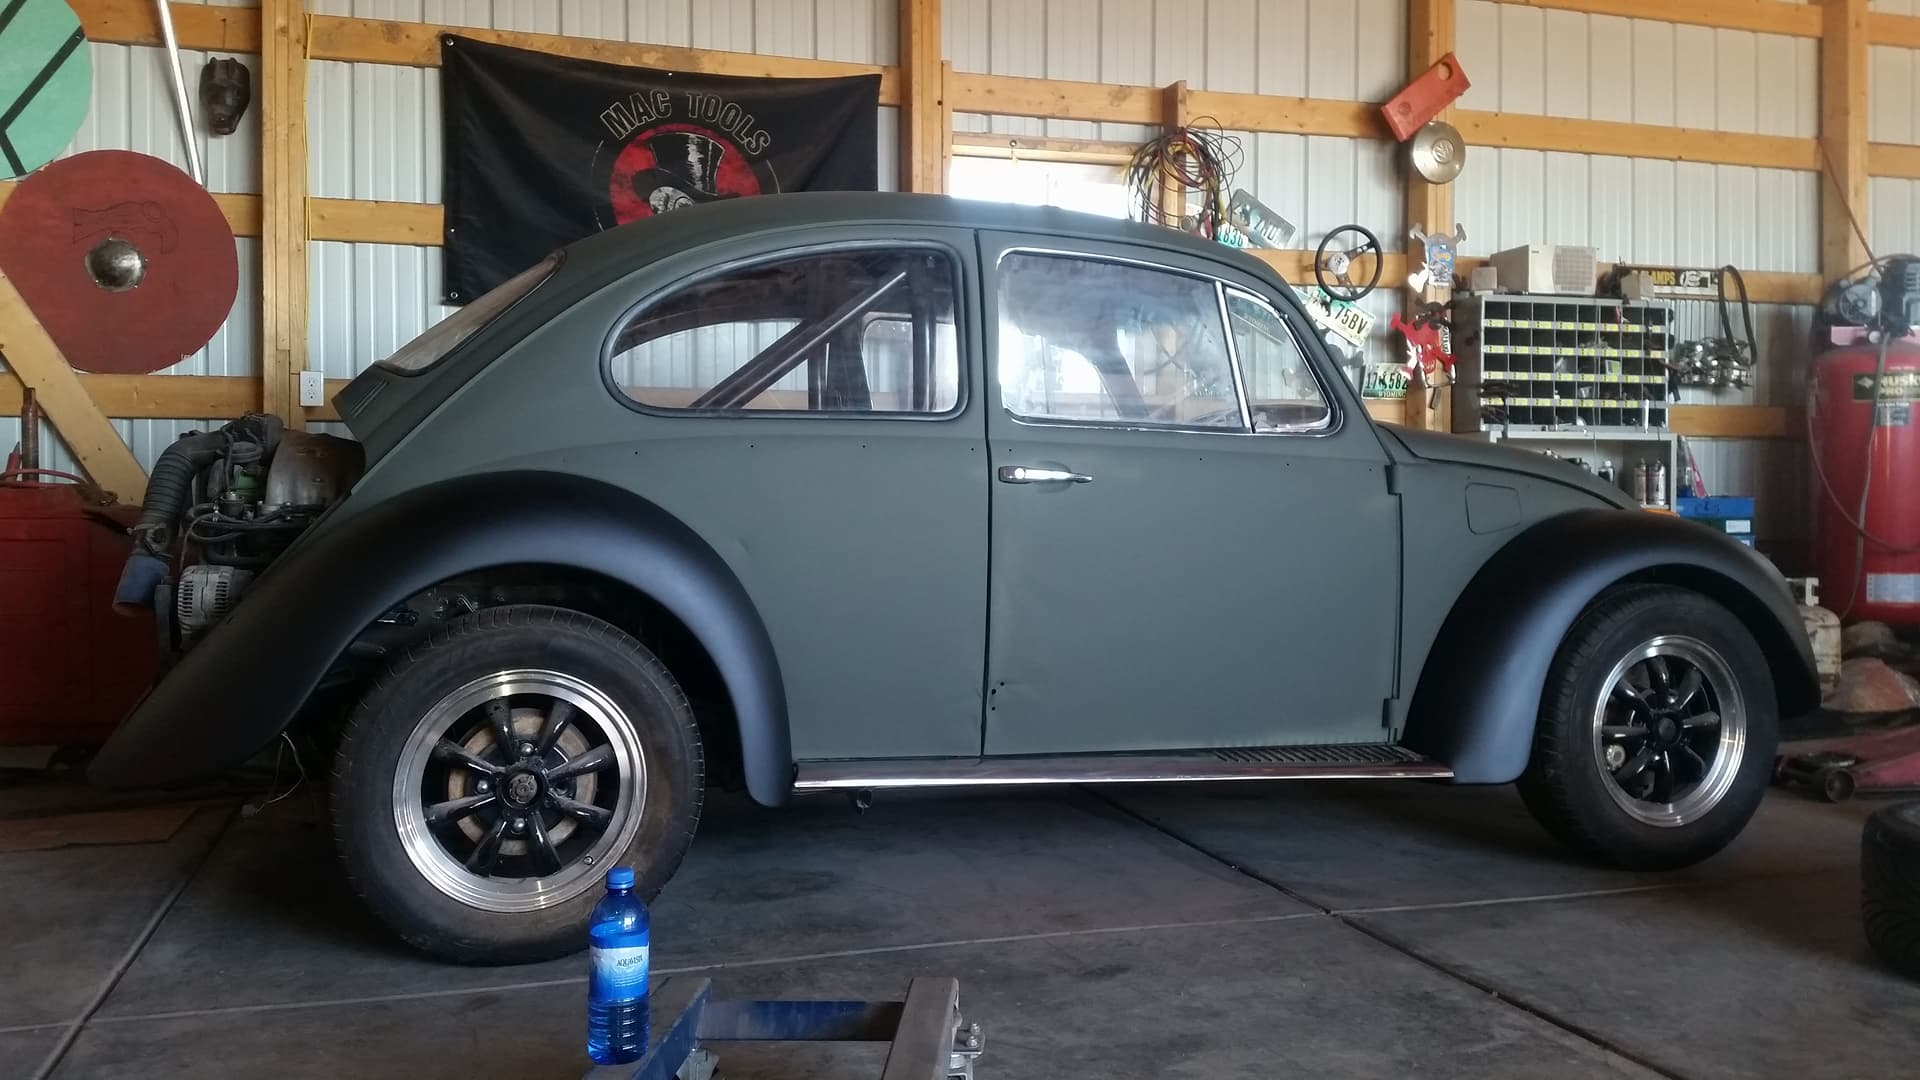 hight resolution of mike speelmon enjoys time spent in his garage working on his 1970 volkswagen beetle the beetle is powered by a 2 0 l 8v aba inline four connected to the